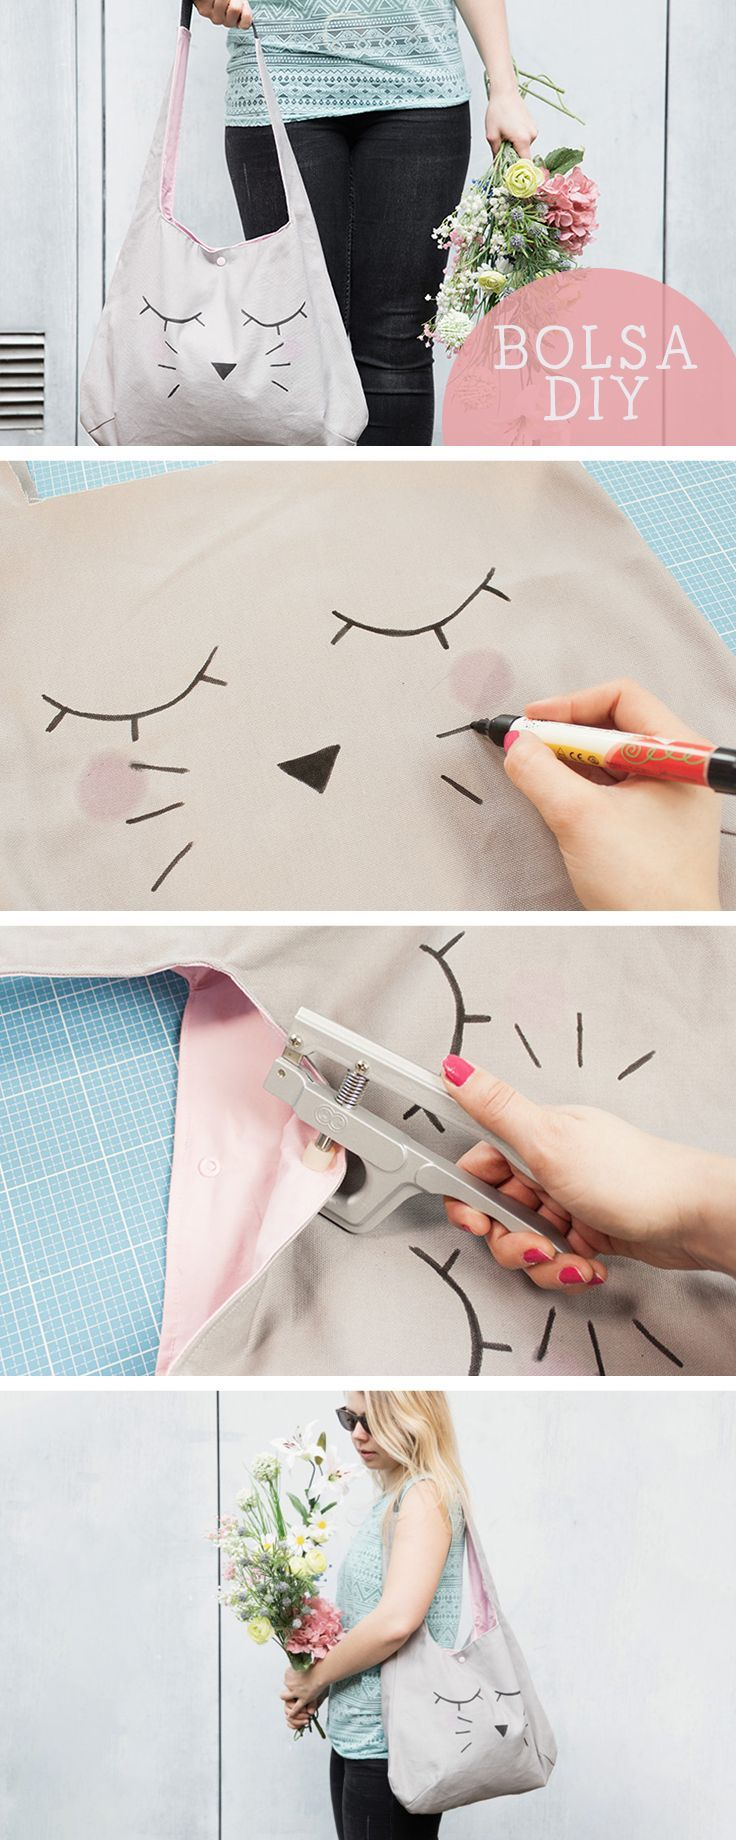 955 best diy tutoriales paso a paso images on pinterest - Como hacer cuadros de tela ...